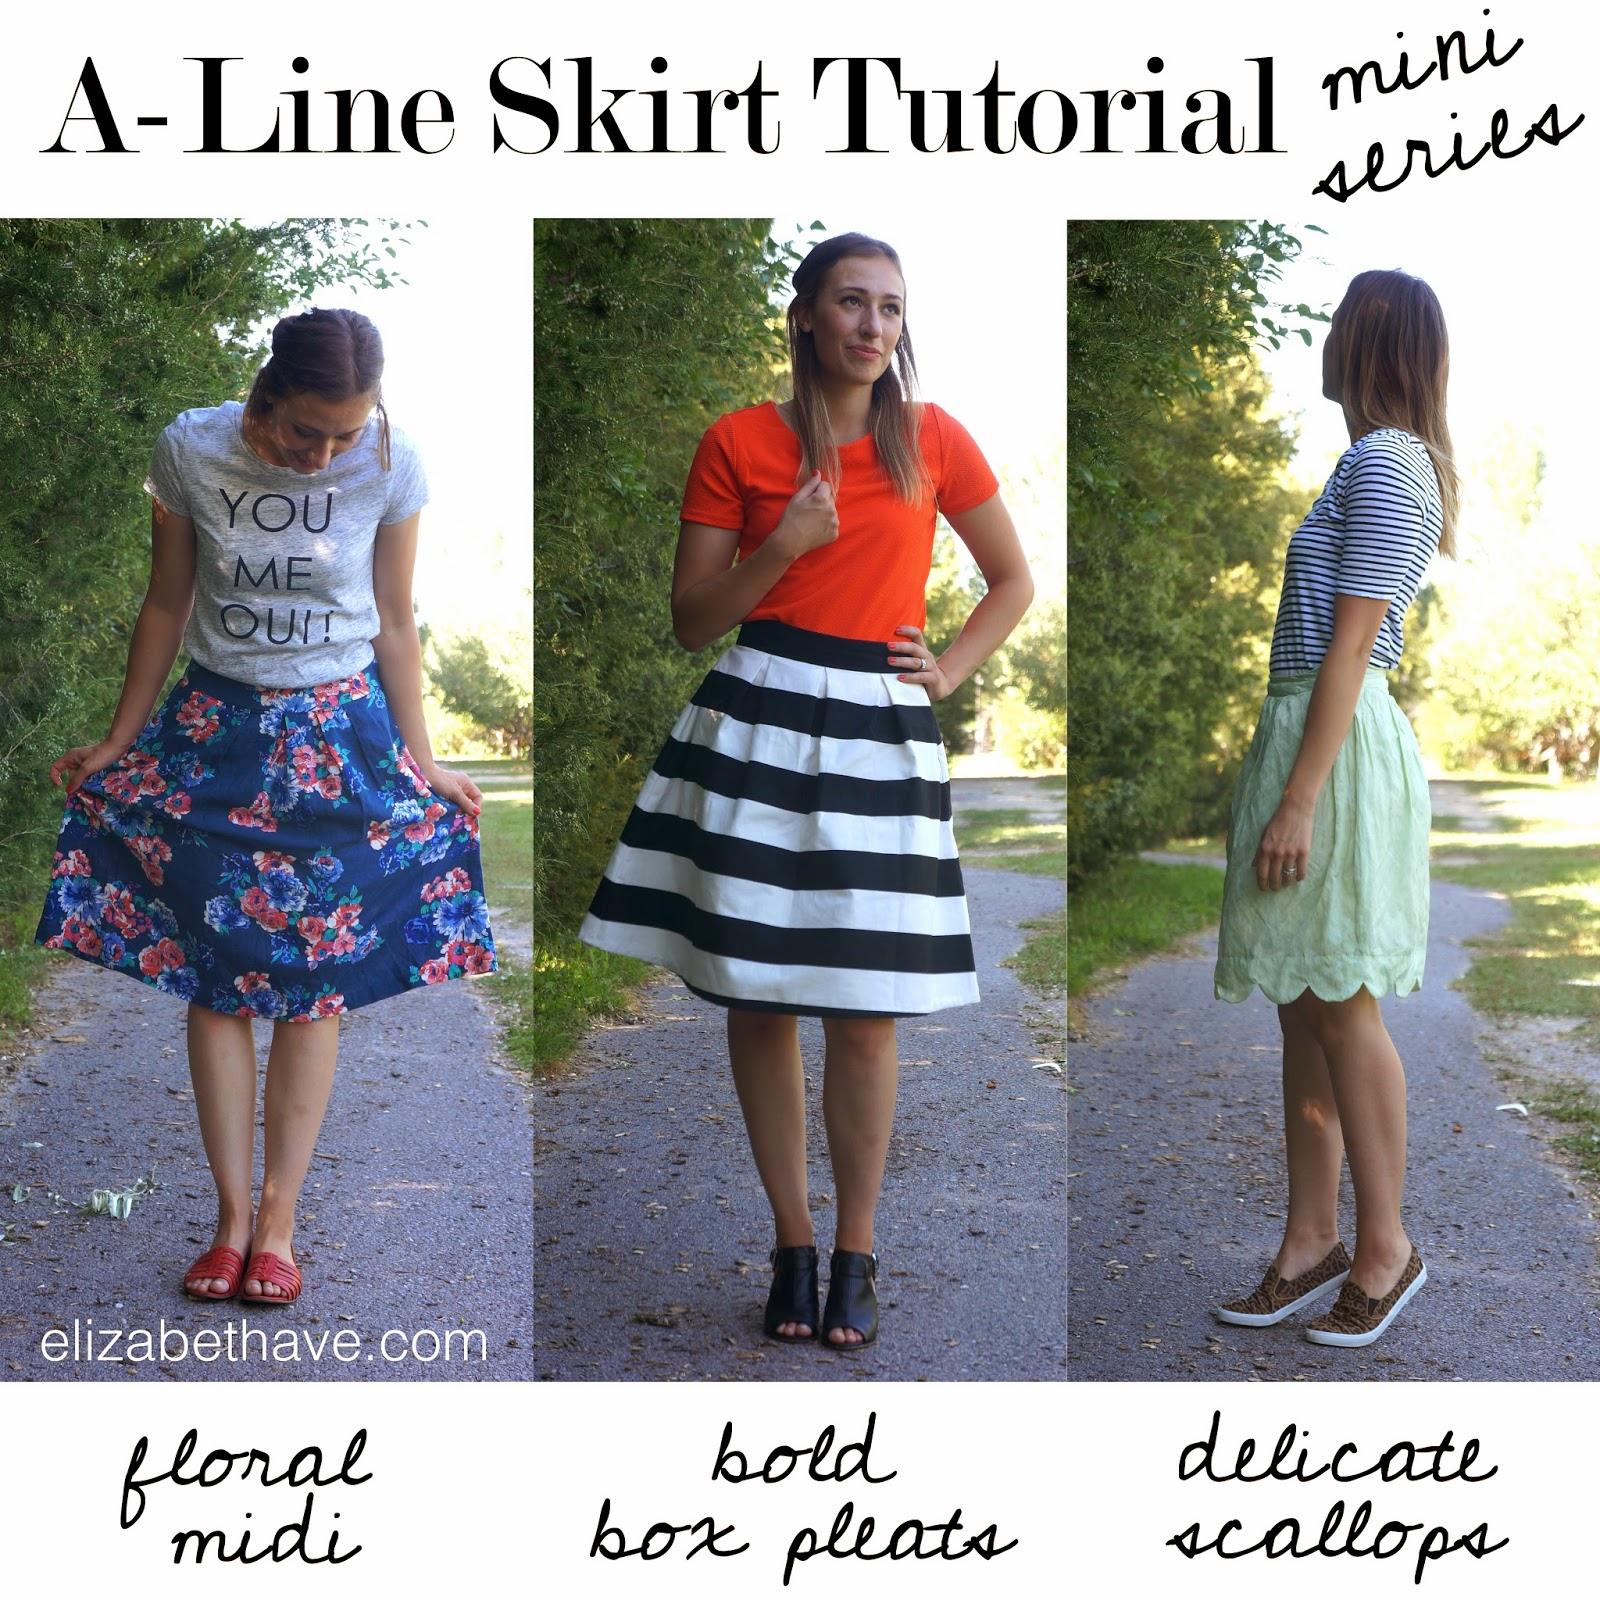 A-Line Skirt Series: Floral Midi Tutorial - Elizabeth Ave